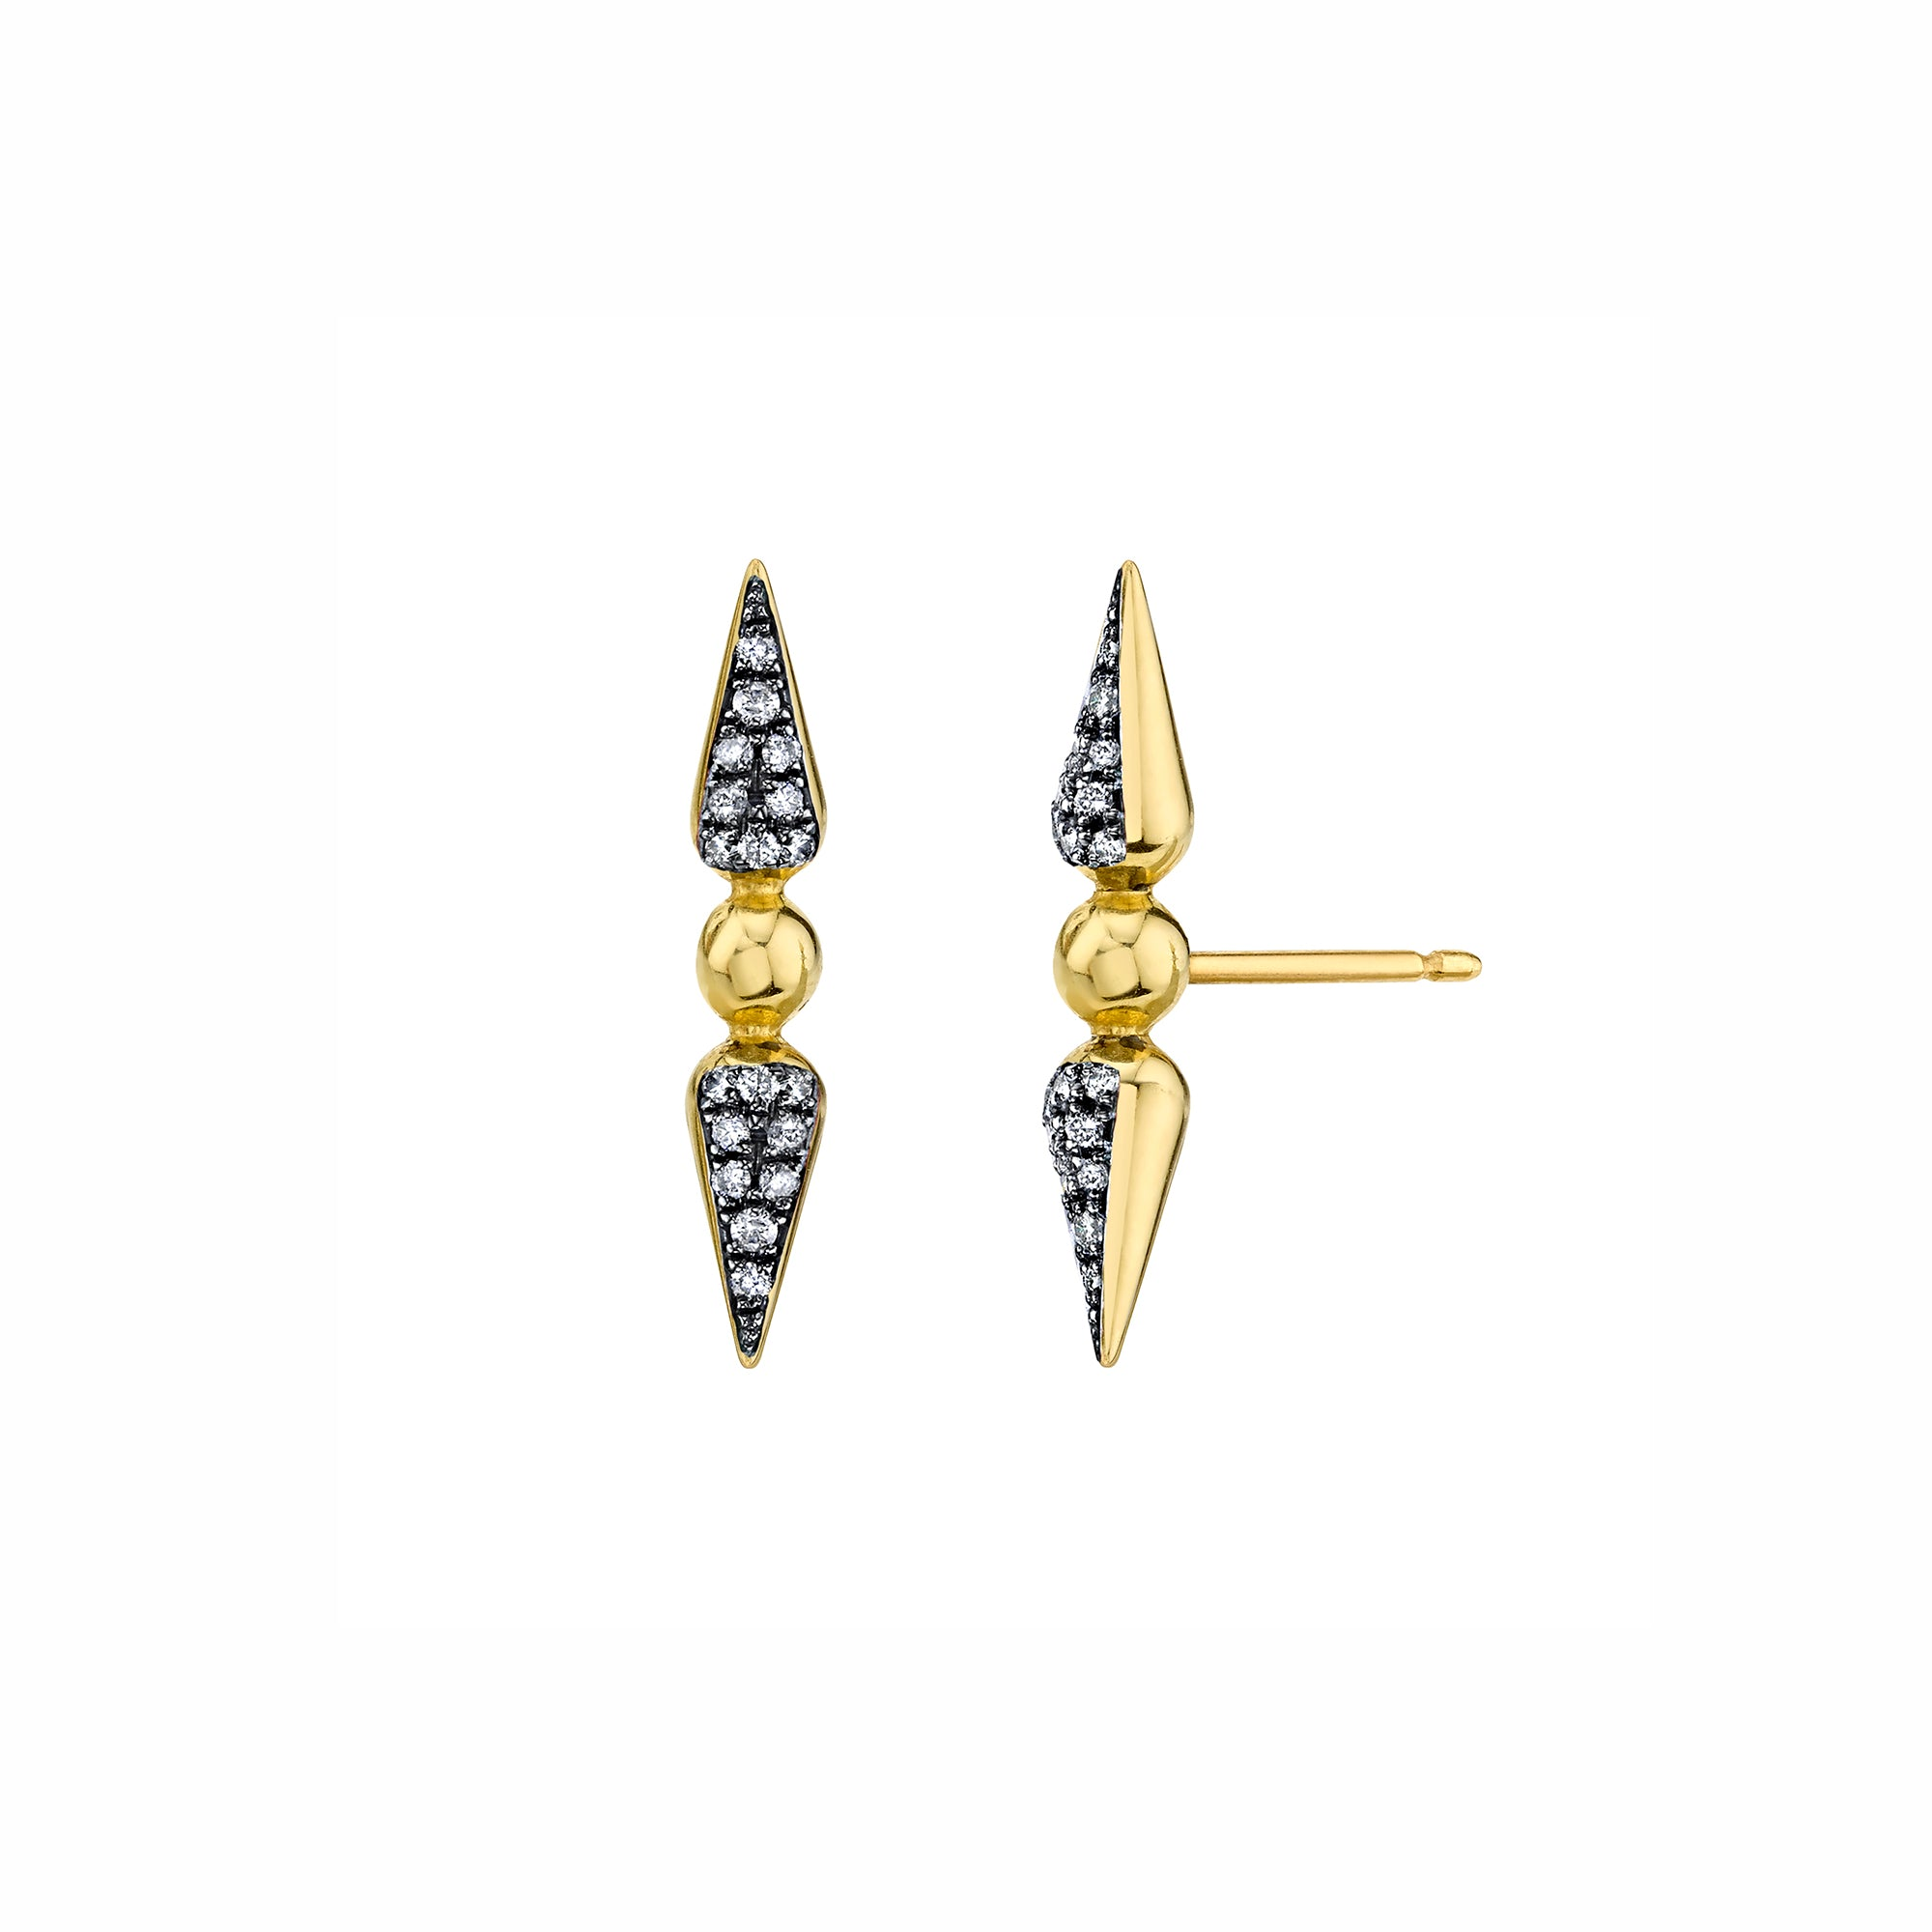 Pave Tip Spear Studs - Diamond - Sarah Hendler - Earrings | Broken English Jewelry